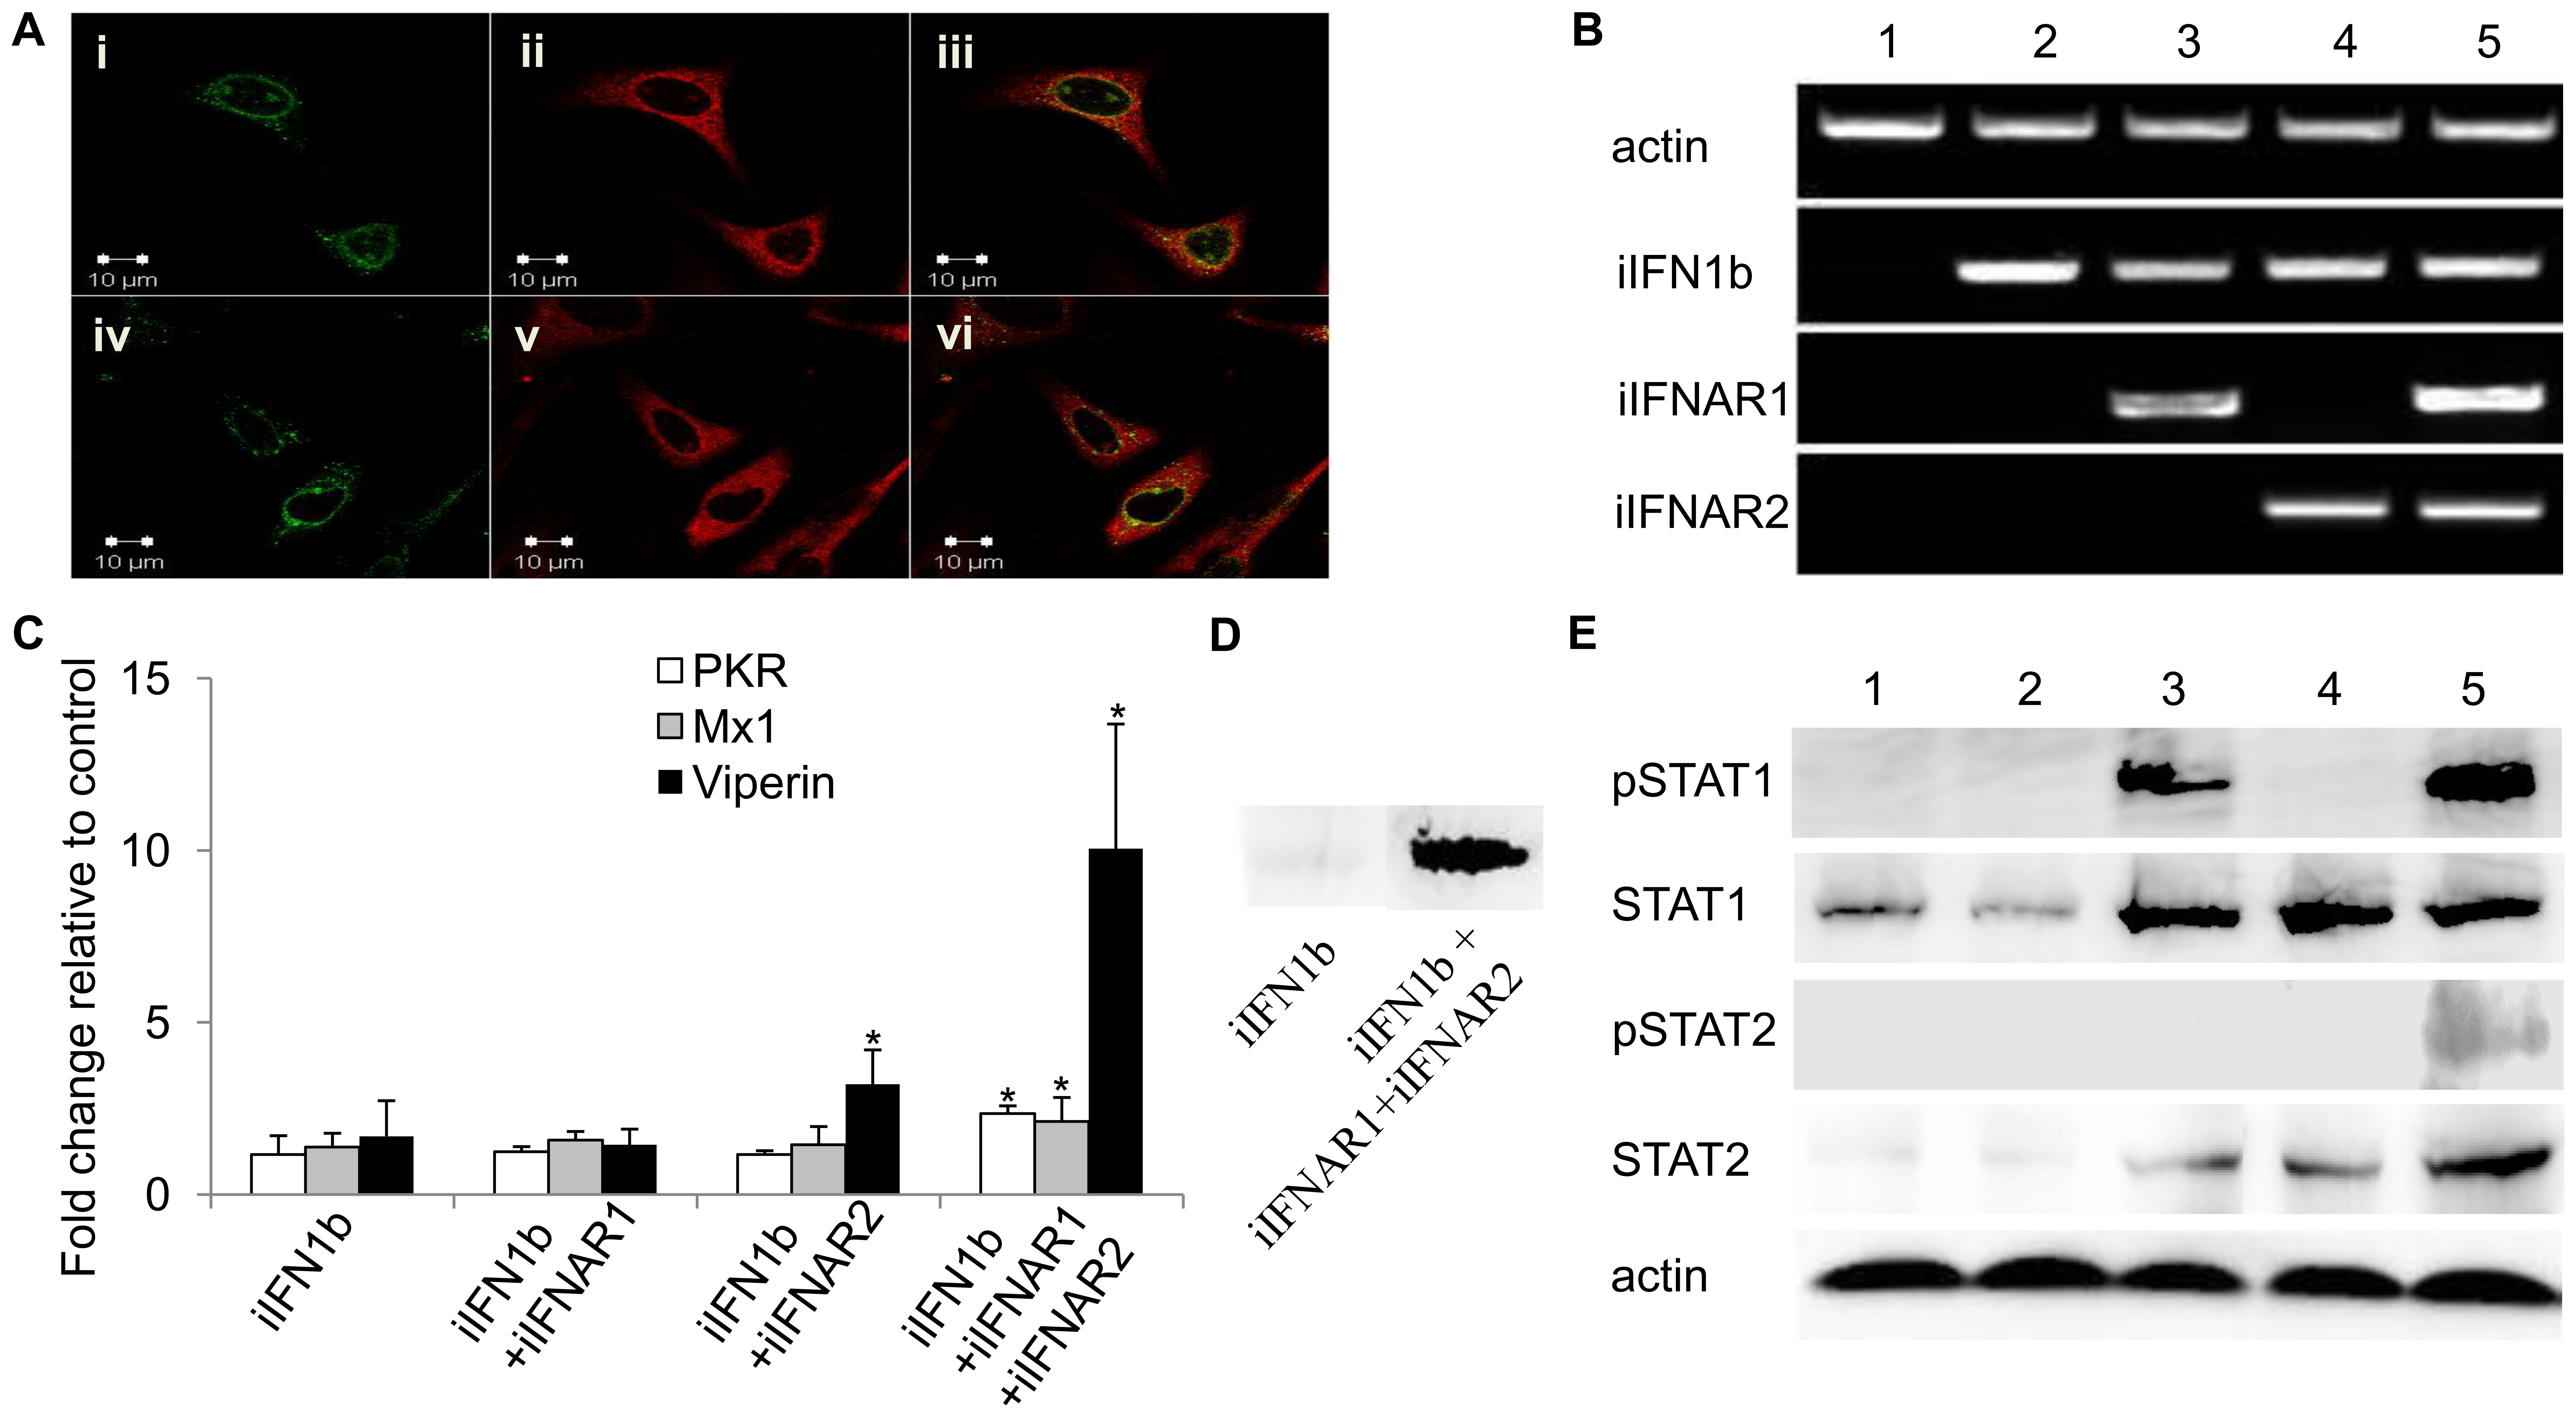 Intracellular IFNs and IFNARs activate antiviral responses via STAT1 and STAT2 phosphorylation.